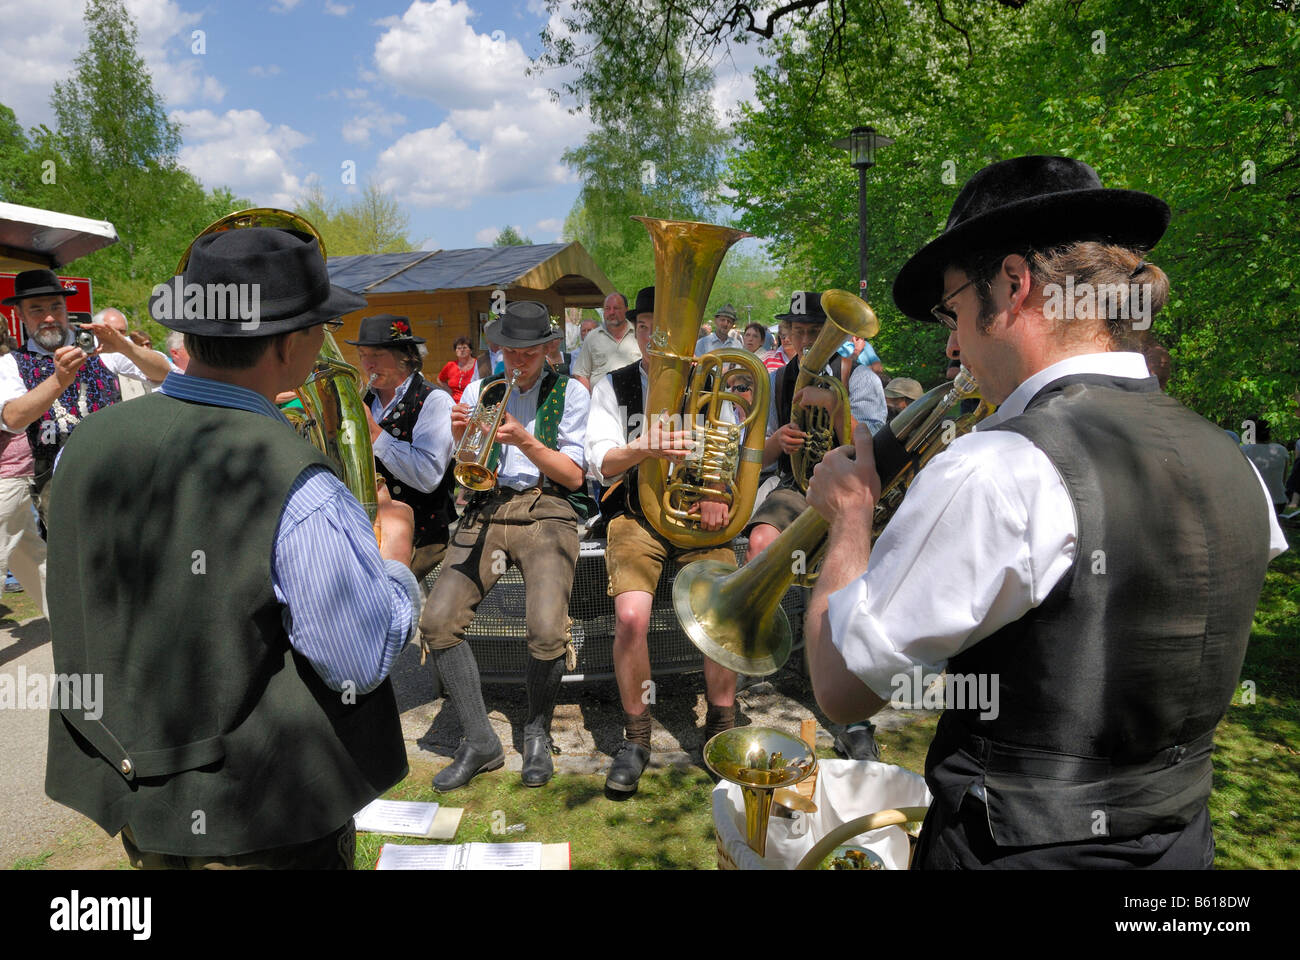 Group of musicians at the folk music festival 'Drumherum' in Regen, Lower Bavaria - Stock Image